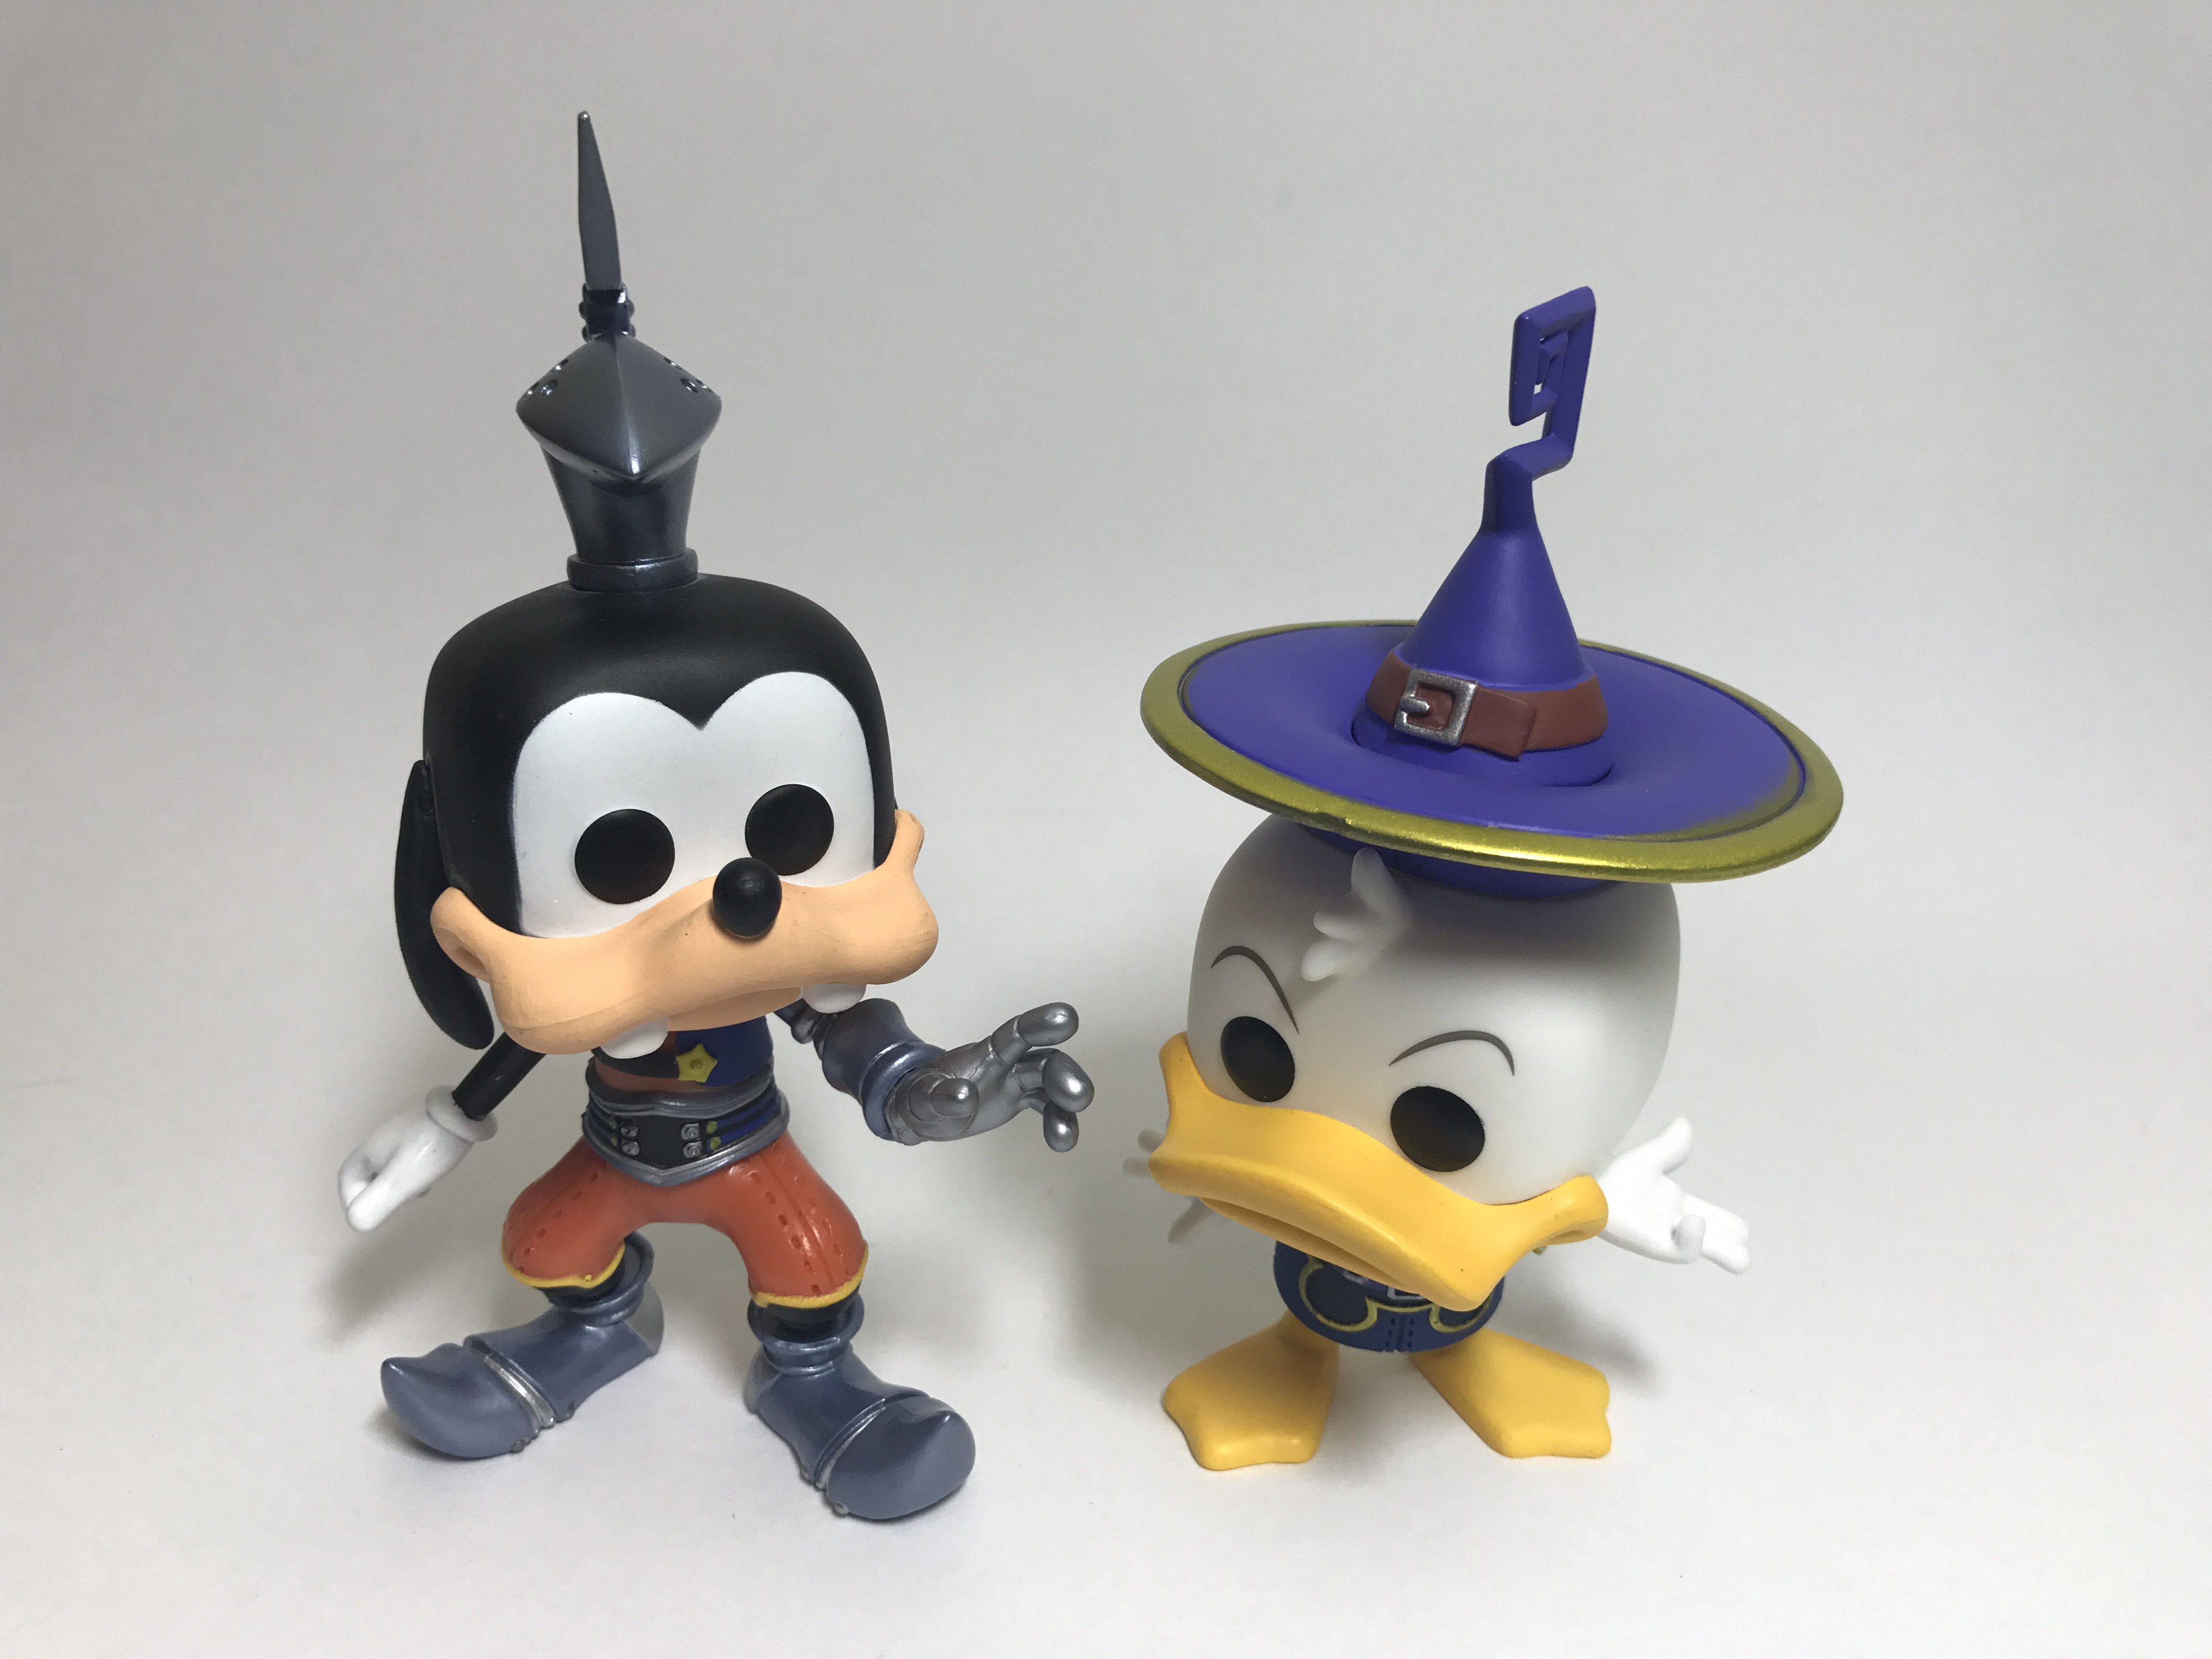 Exclusive Goofy and Donald